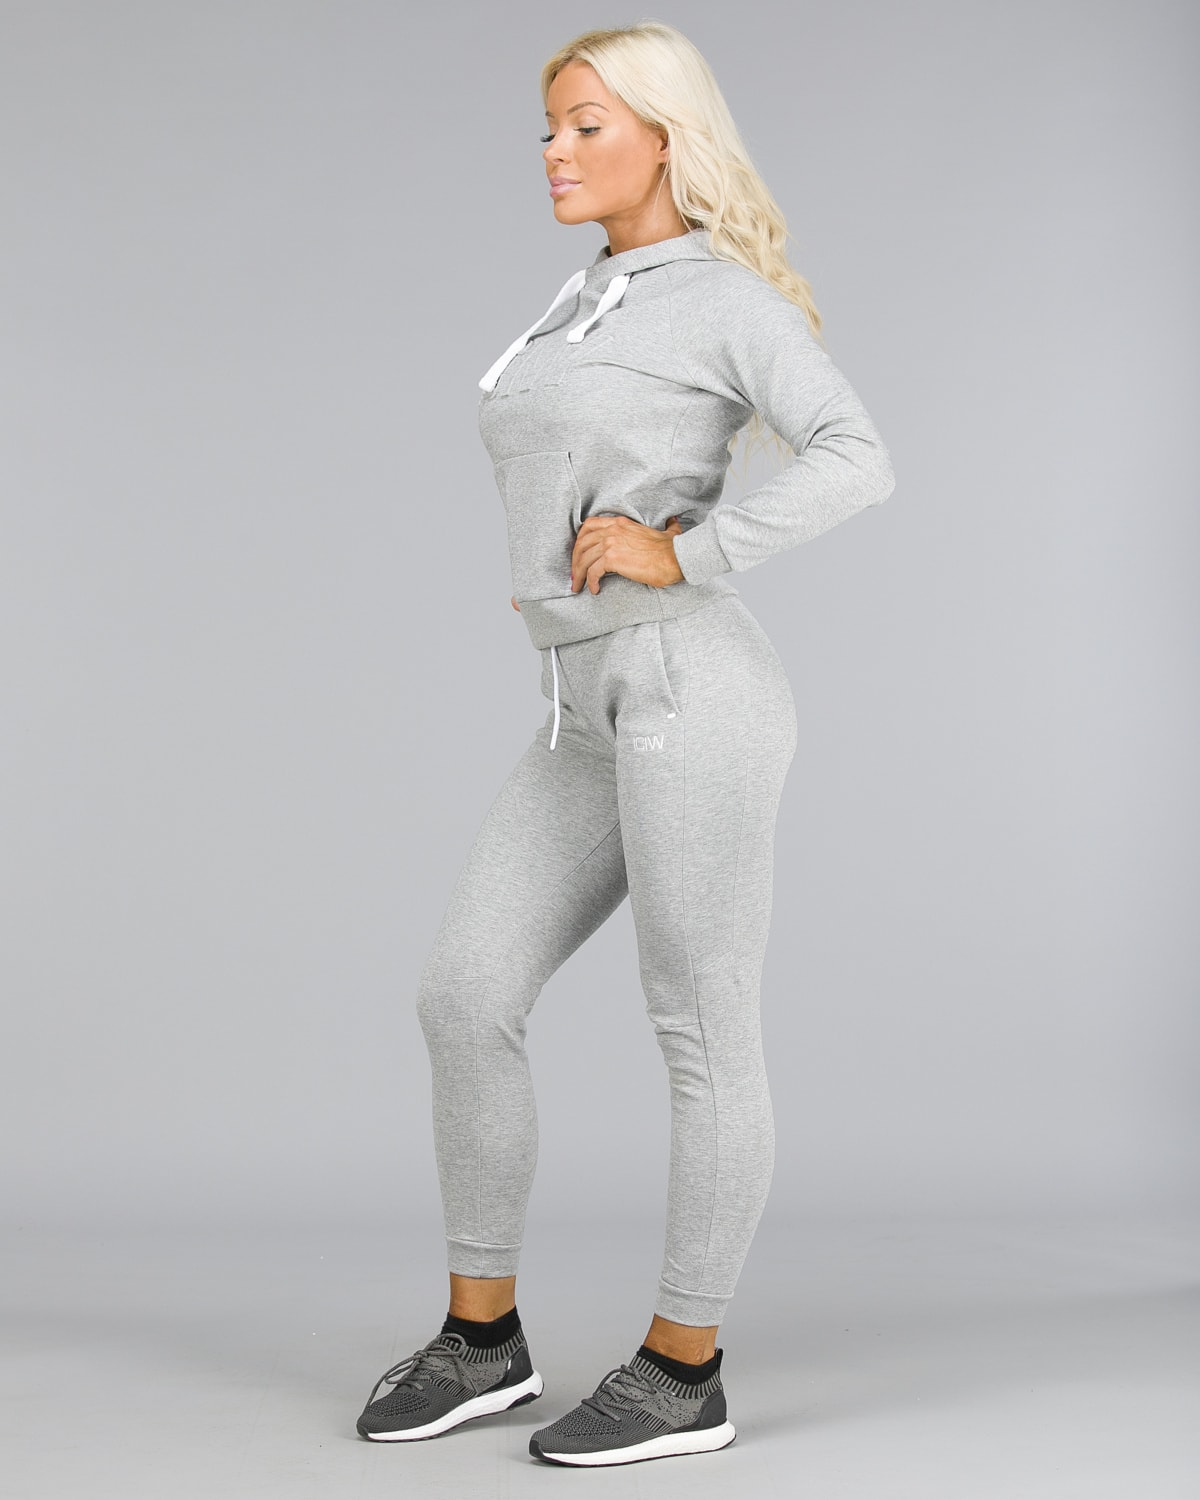 ICANIWILL – Sweat Pants – Light Grey a